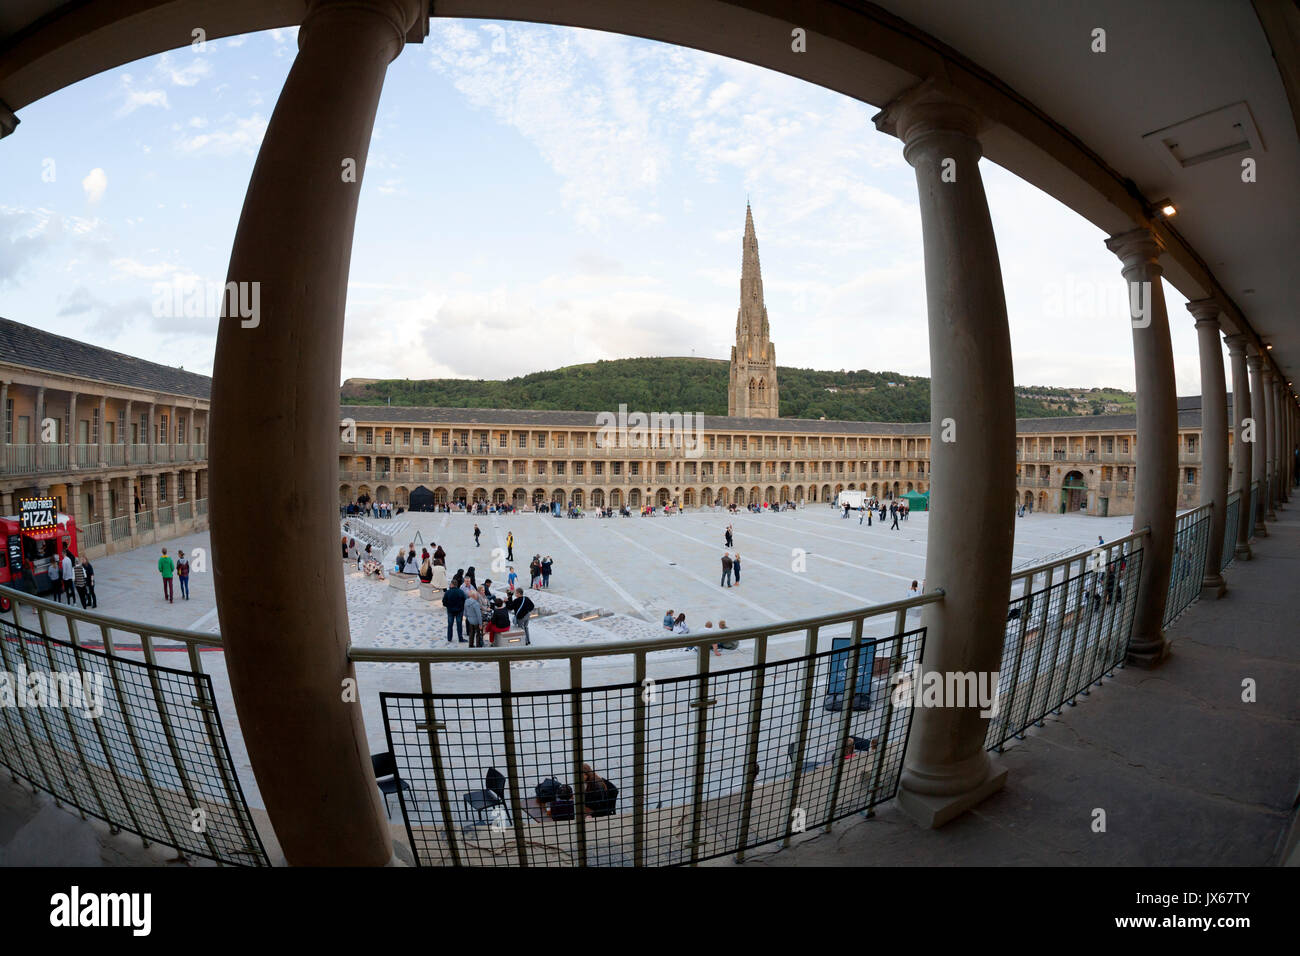 The Piece Hall, Halifax, West Yorkshire - Stock Image